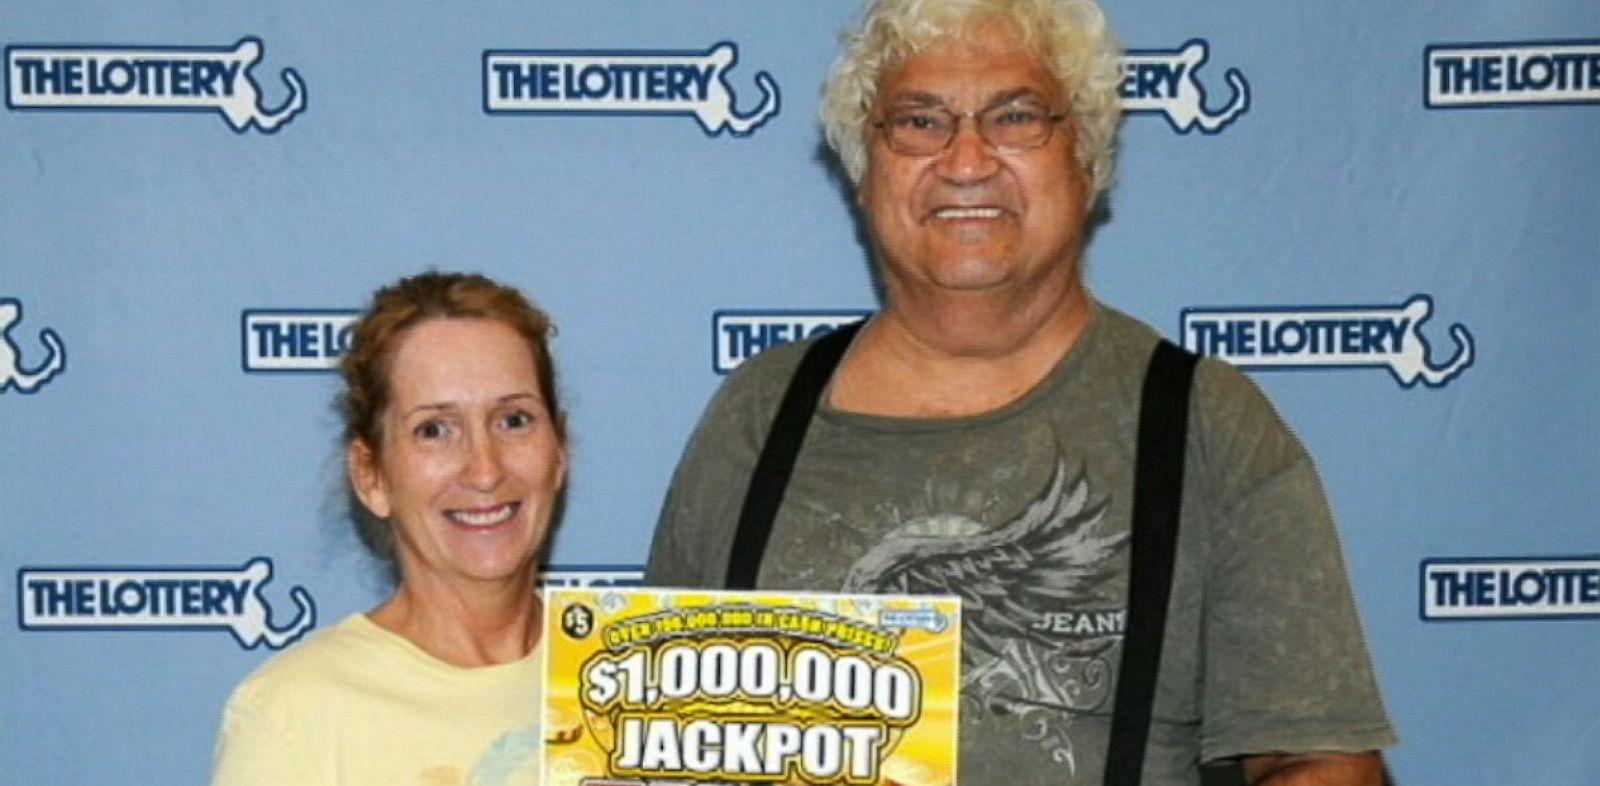 PHOTO: Joseph and Joanna Zagami won $1 million off a scratch off lottery ticket